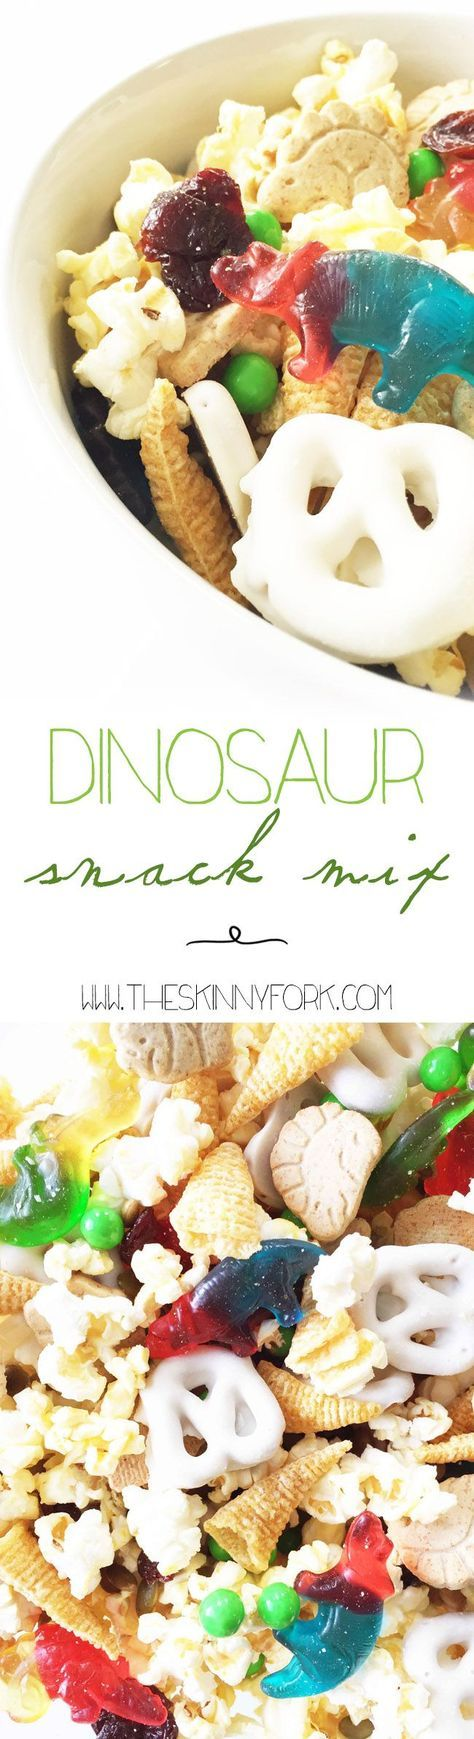 This Dinosaur Snack Mix is the perfect movie night companion for watching The Land Before Time with the kiddos or a dino themed birthday party! It's got a little bit of everything and is sure to make mouths happy - big and little alike. TheSkinnyFork.com | Skinny & Healthy Recipes #Pop4LandB4time #Pmedia #Ad @PopSecret @Walmart